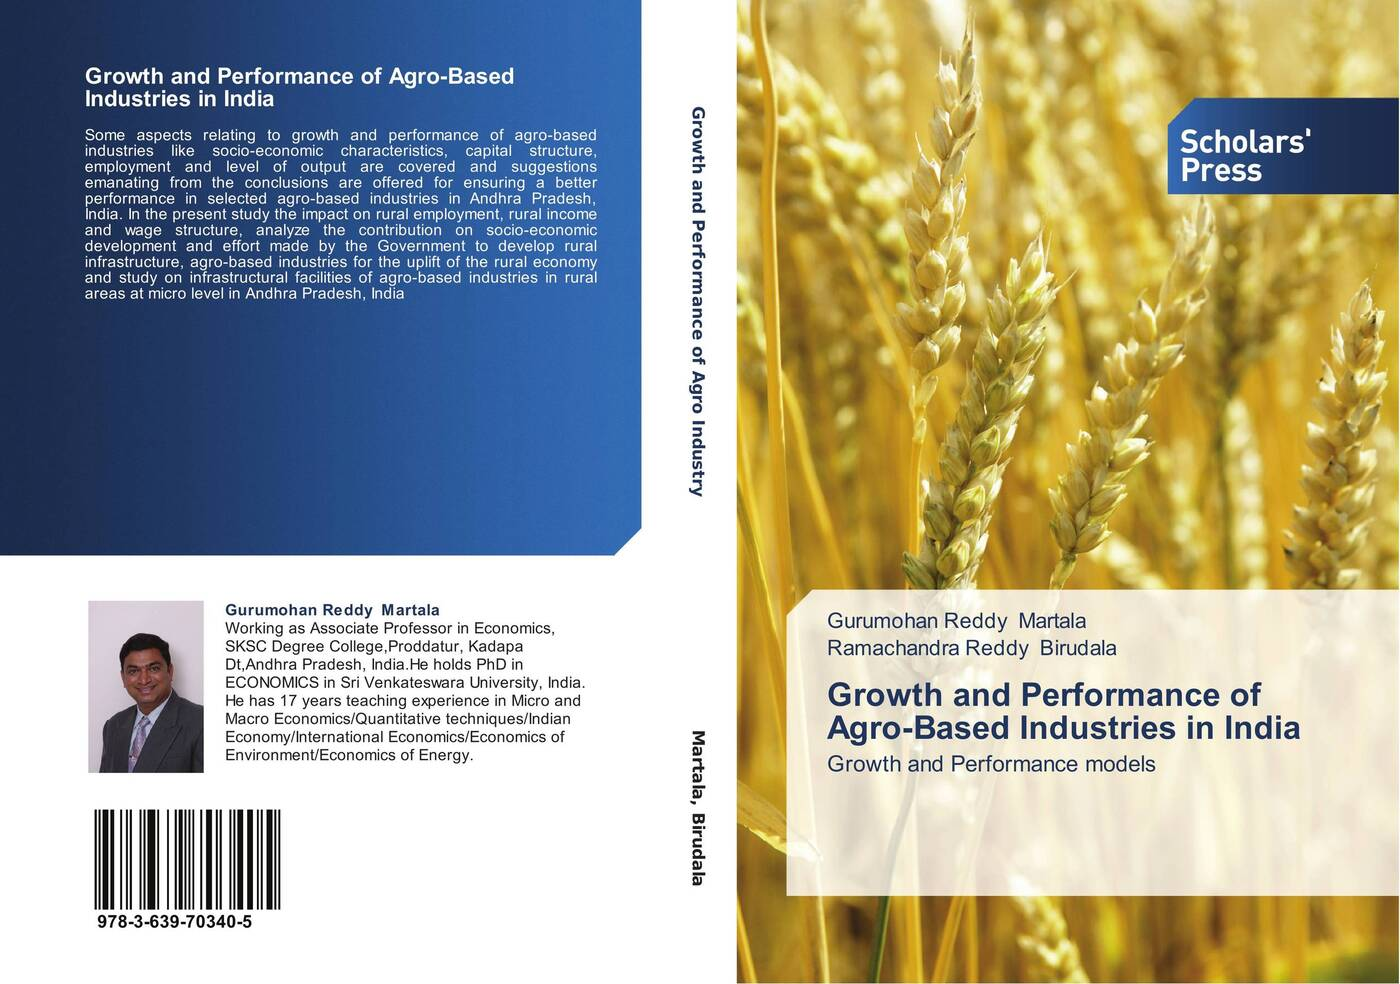 Gurumohan Reddy Martala and Ramachandra Reddy Birudala Growth and Performance of Agro-Based Industries in India socio economic determinants of performance of smes